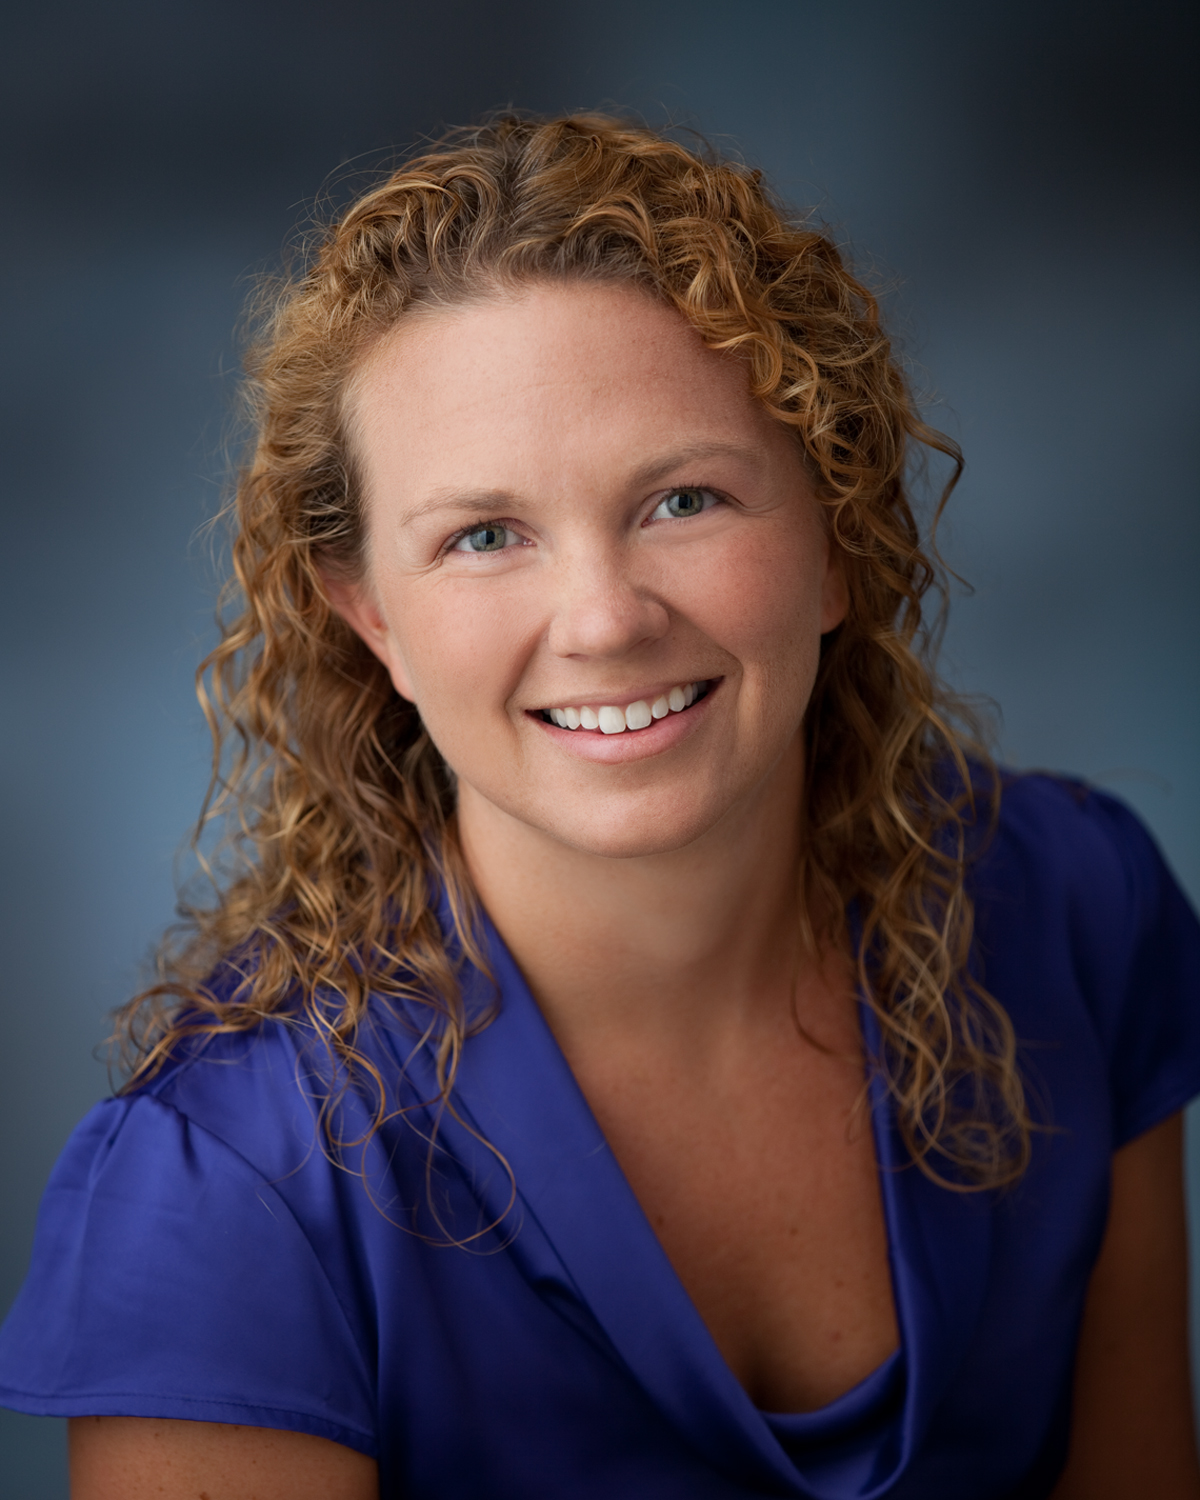 Angela M. Kondrat, MD - Physician and Surgeon in Portland, OR